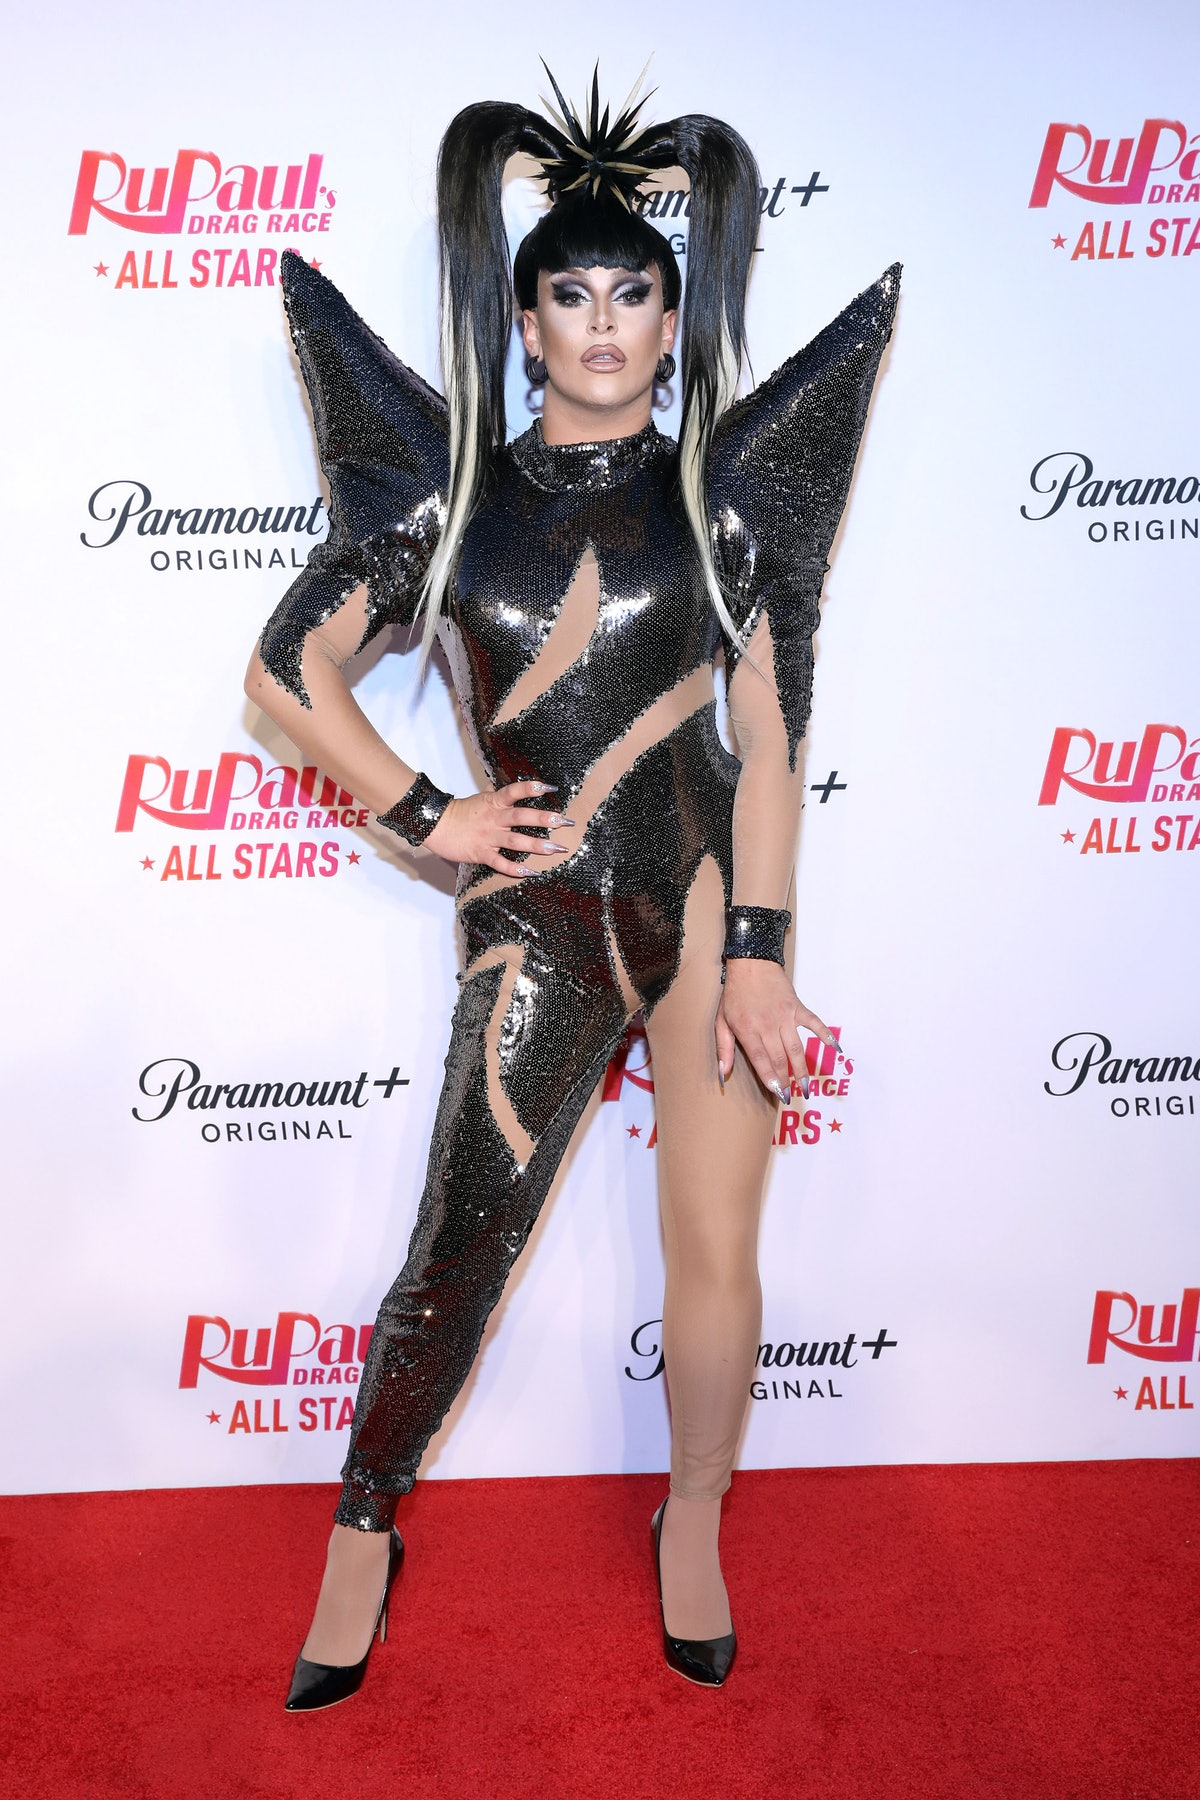 NEW YORK, NEW YORK - JUNE 26: Jan attends Paramount+ & RuPaul's Drag Race All Stars Cast Celebrate The S6 Premiere At Drive n' Drag at Randall's Island Park on June 26, 2021 in New York City. (Photo by Monica Schipper/Getty Images for Paramount+)